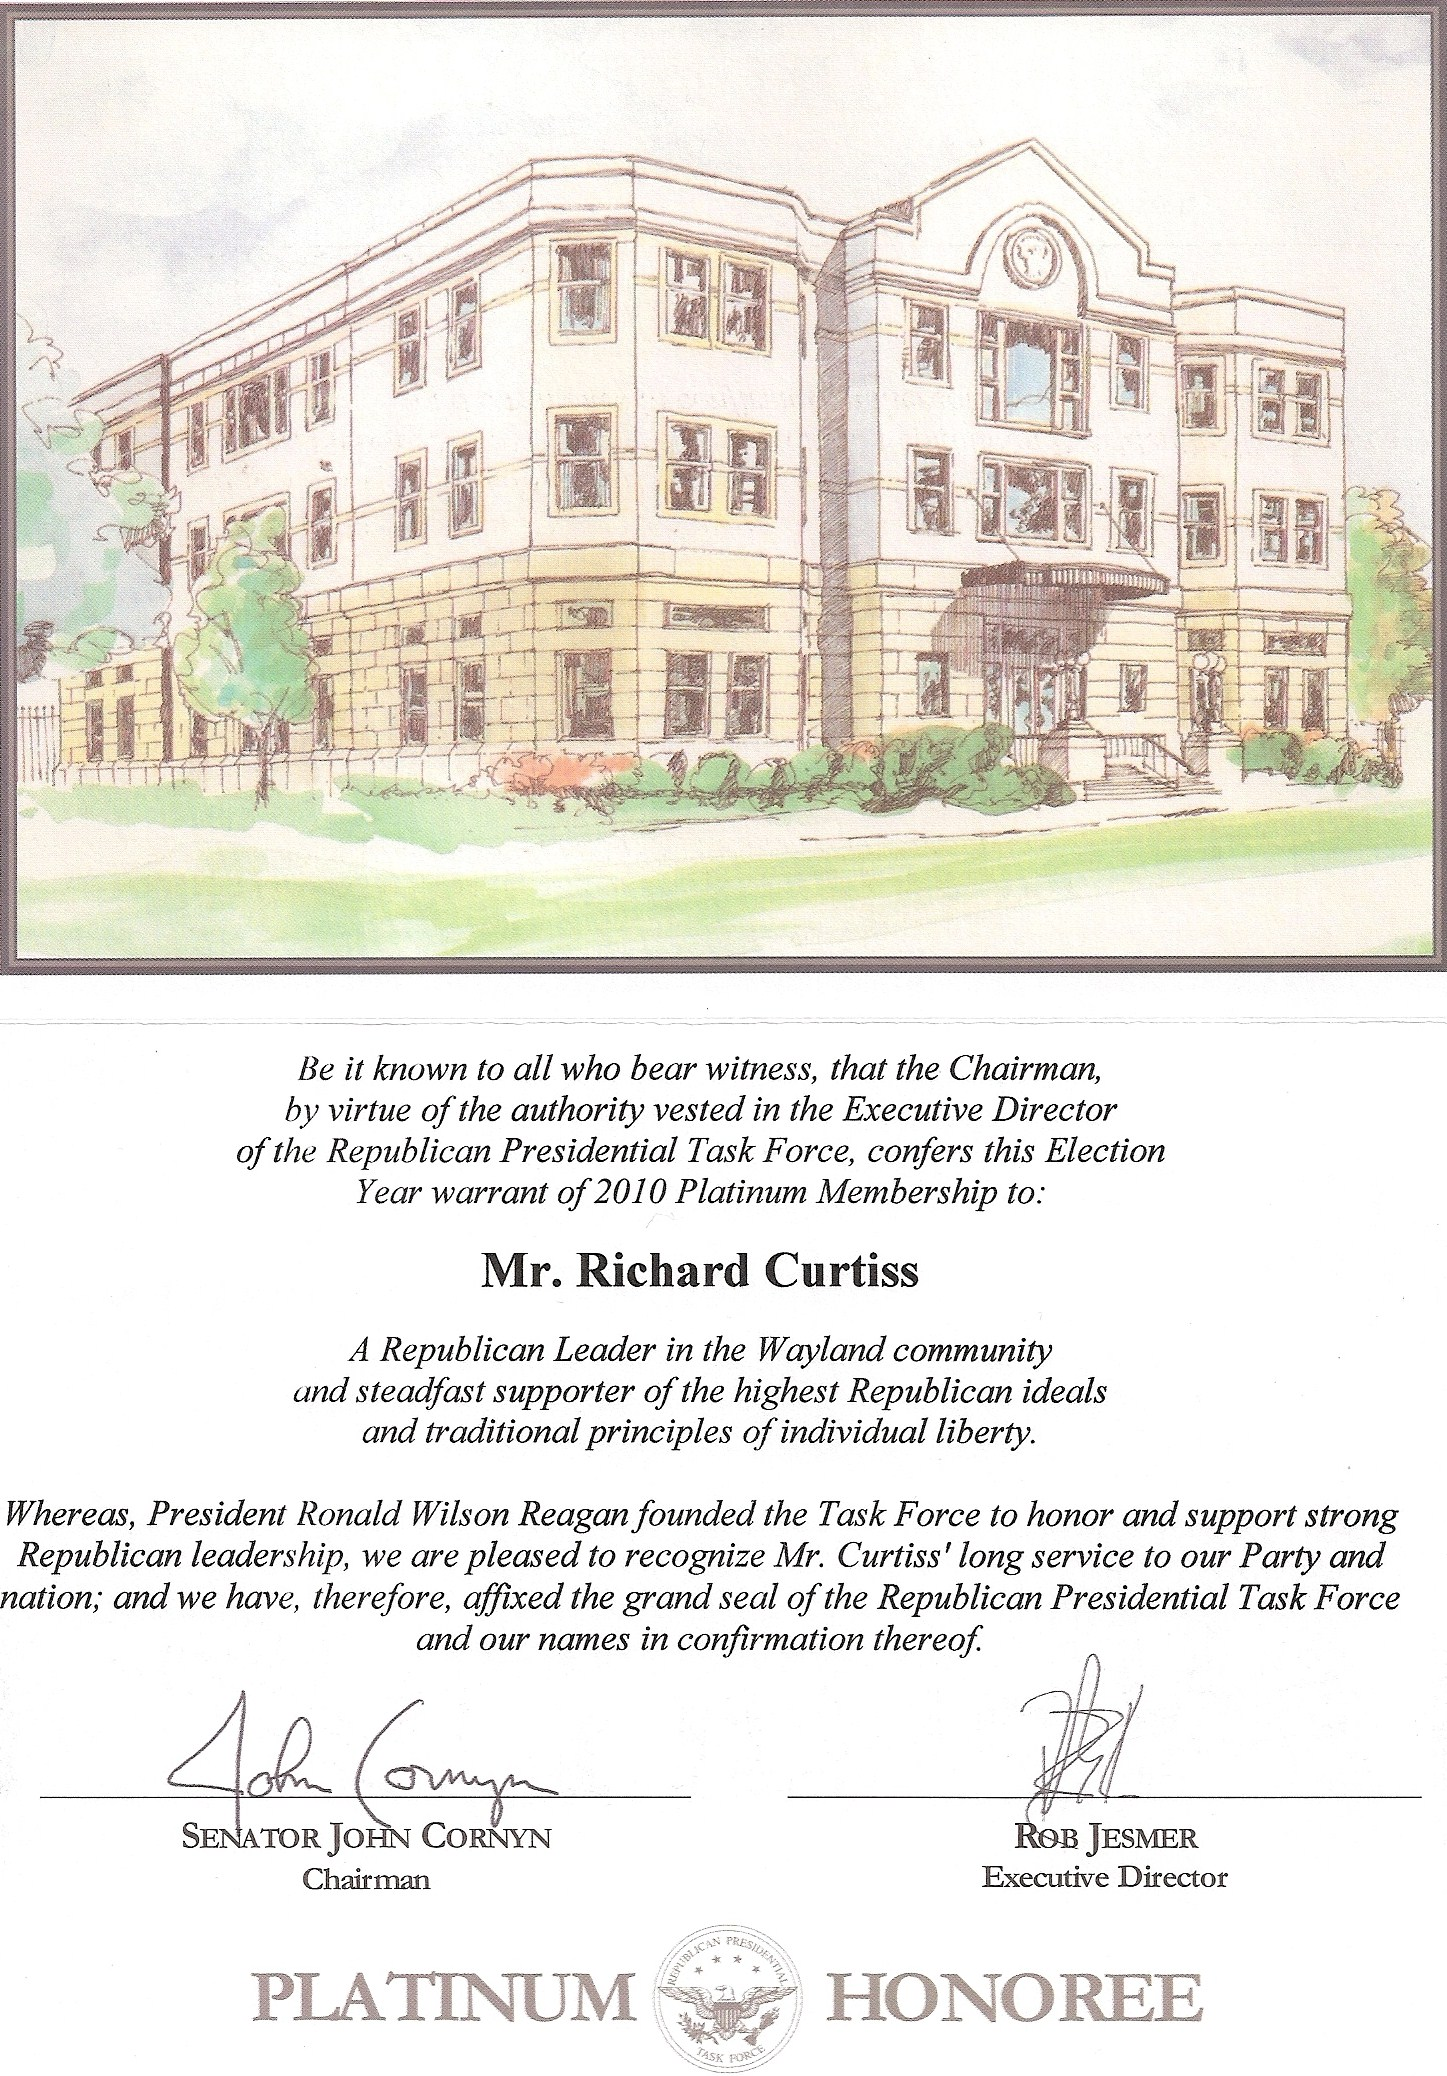 Platinum Honoree Certificate